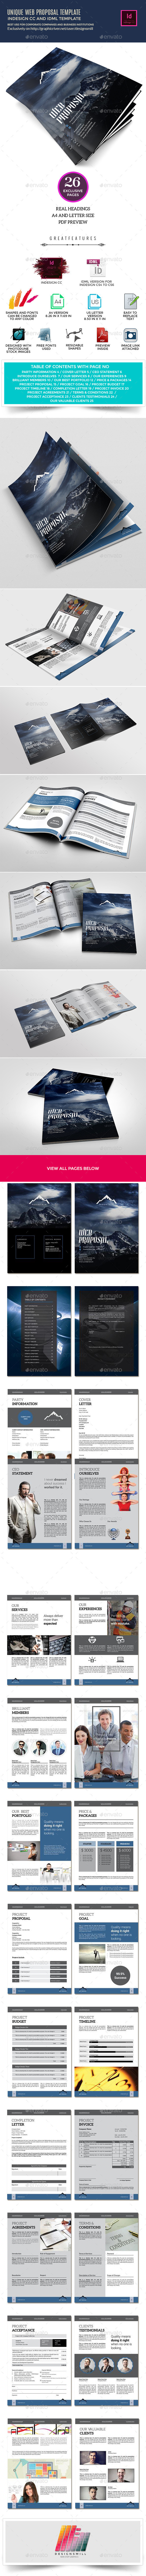 Web Proposal - Proposals & Invoices Stationery